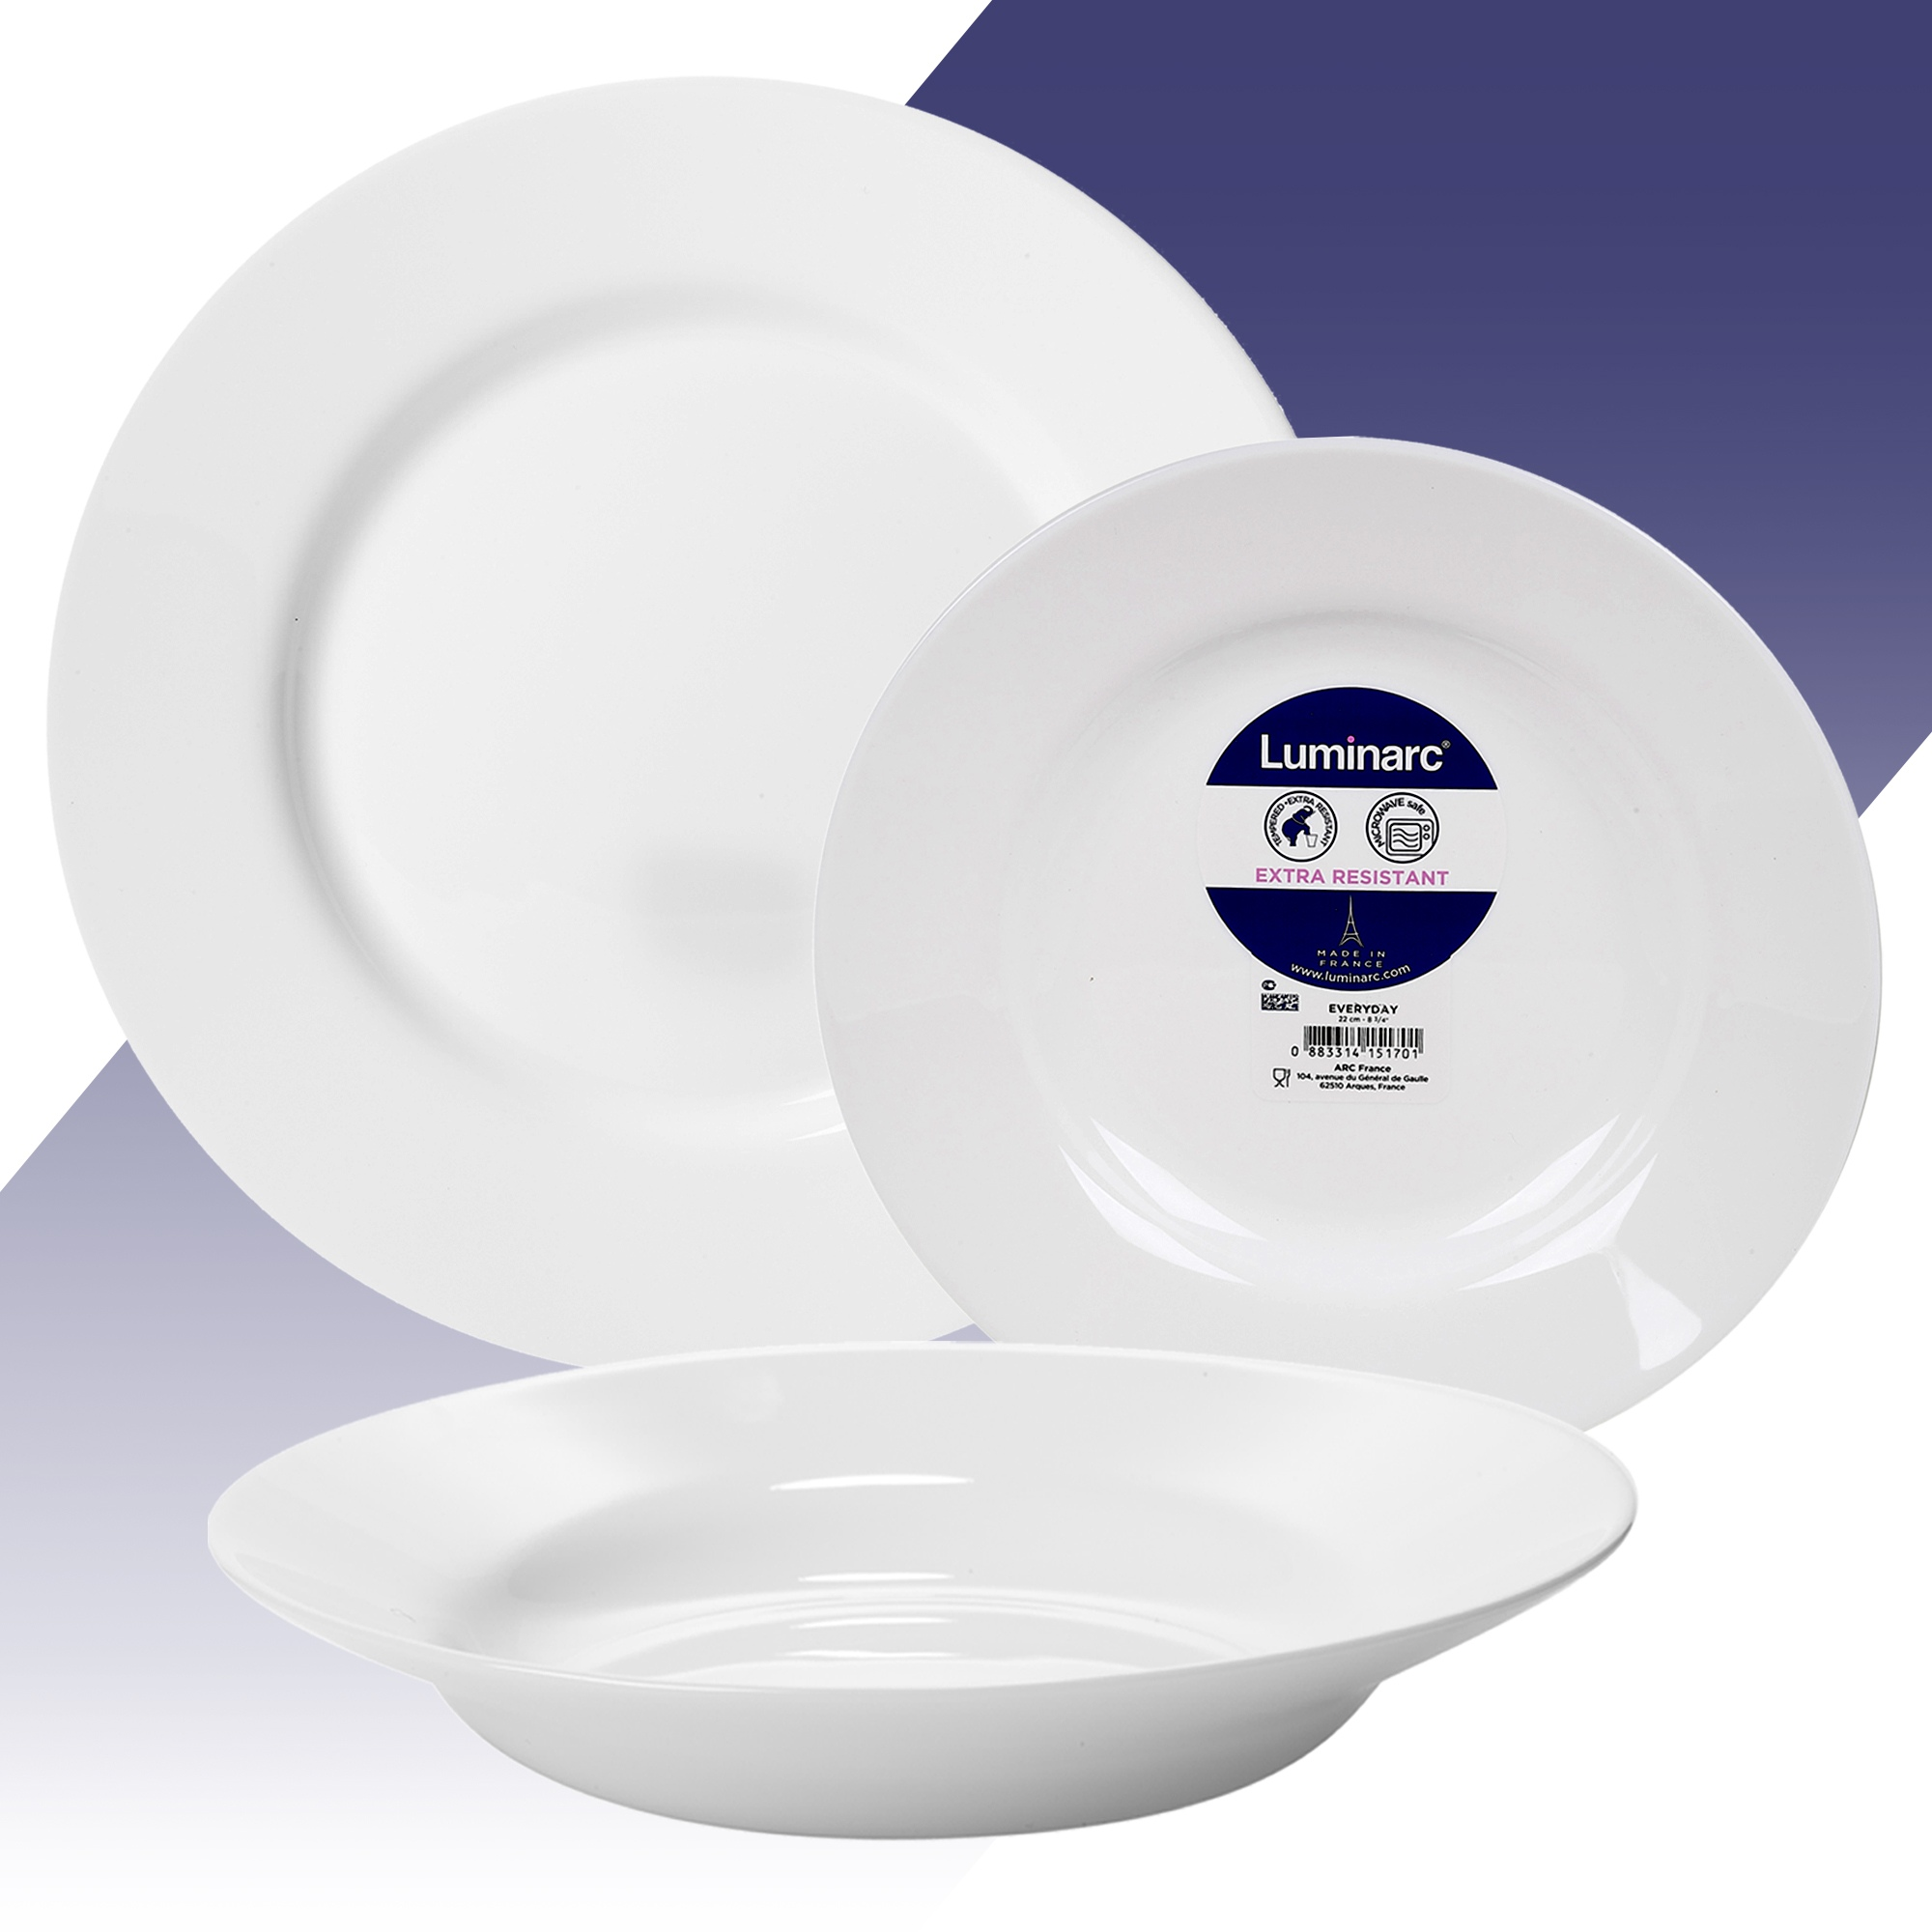 Luminarc 18 Pcs White Opal Glass Dinner Set Dinnerware Tableware Dining Plates Ebay